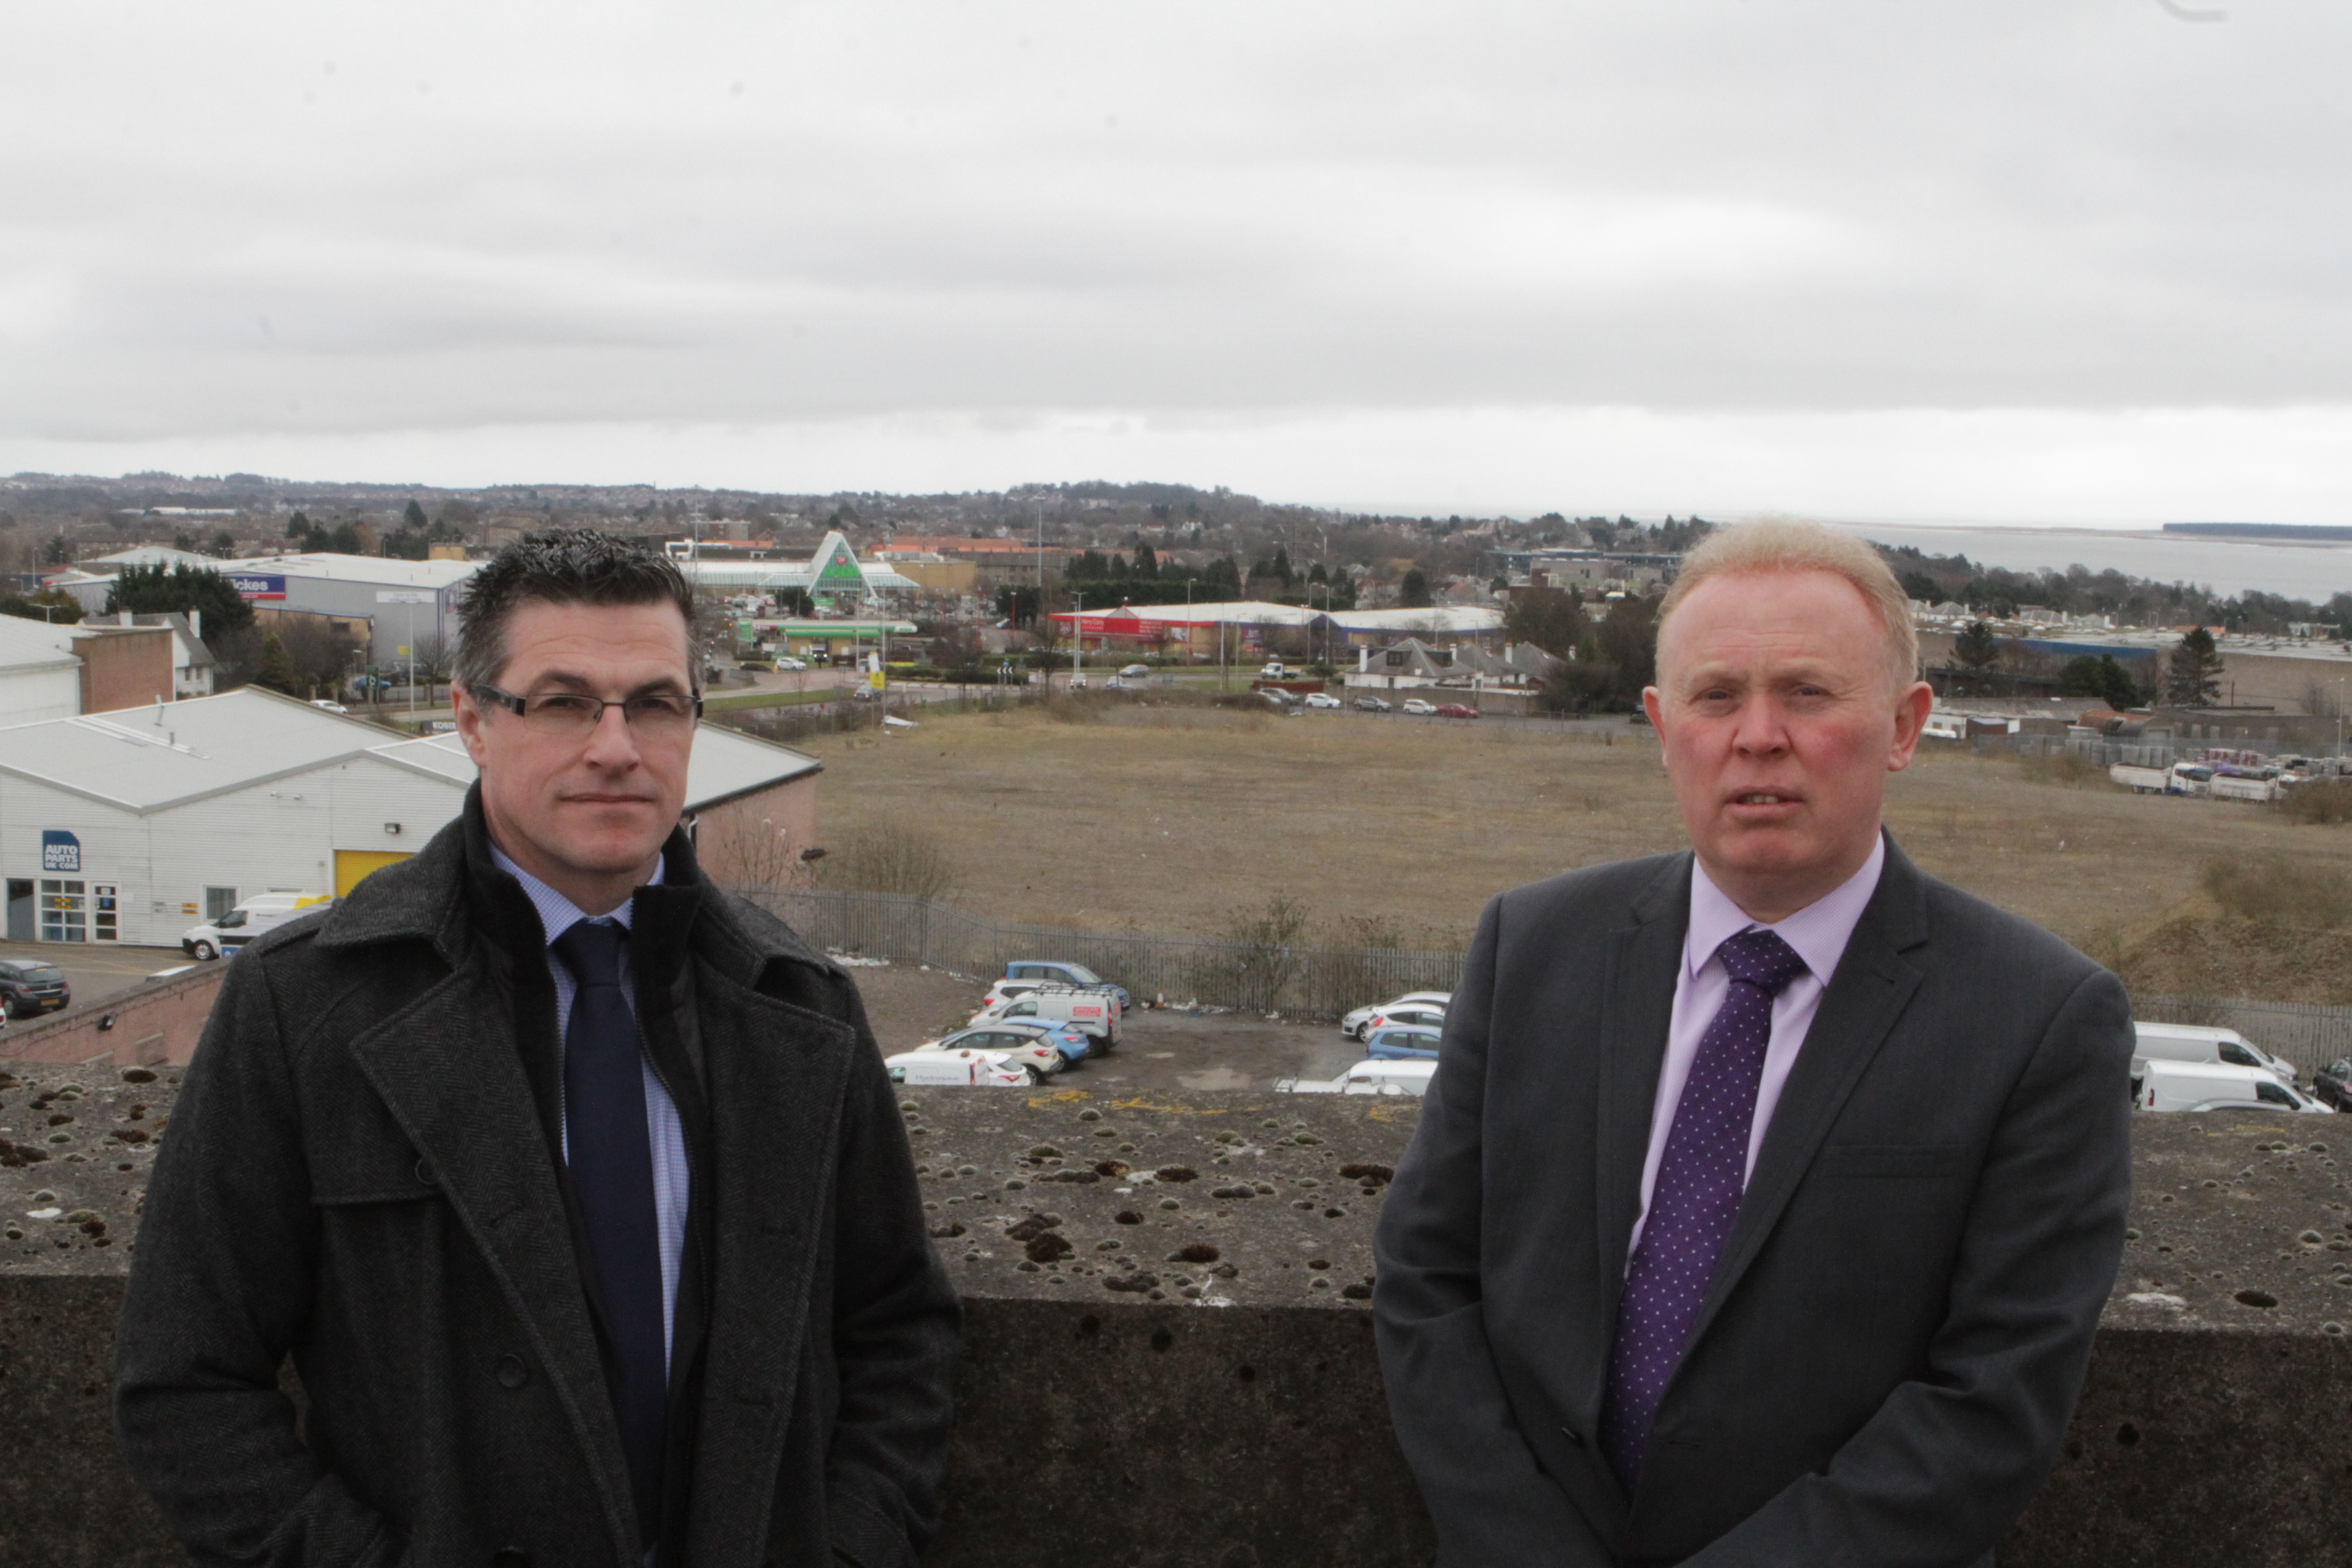 Detective Constable Mike Proctor and Detective Chief Inspector Andy Guy visited Dundee.